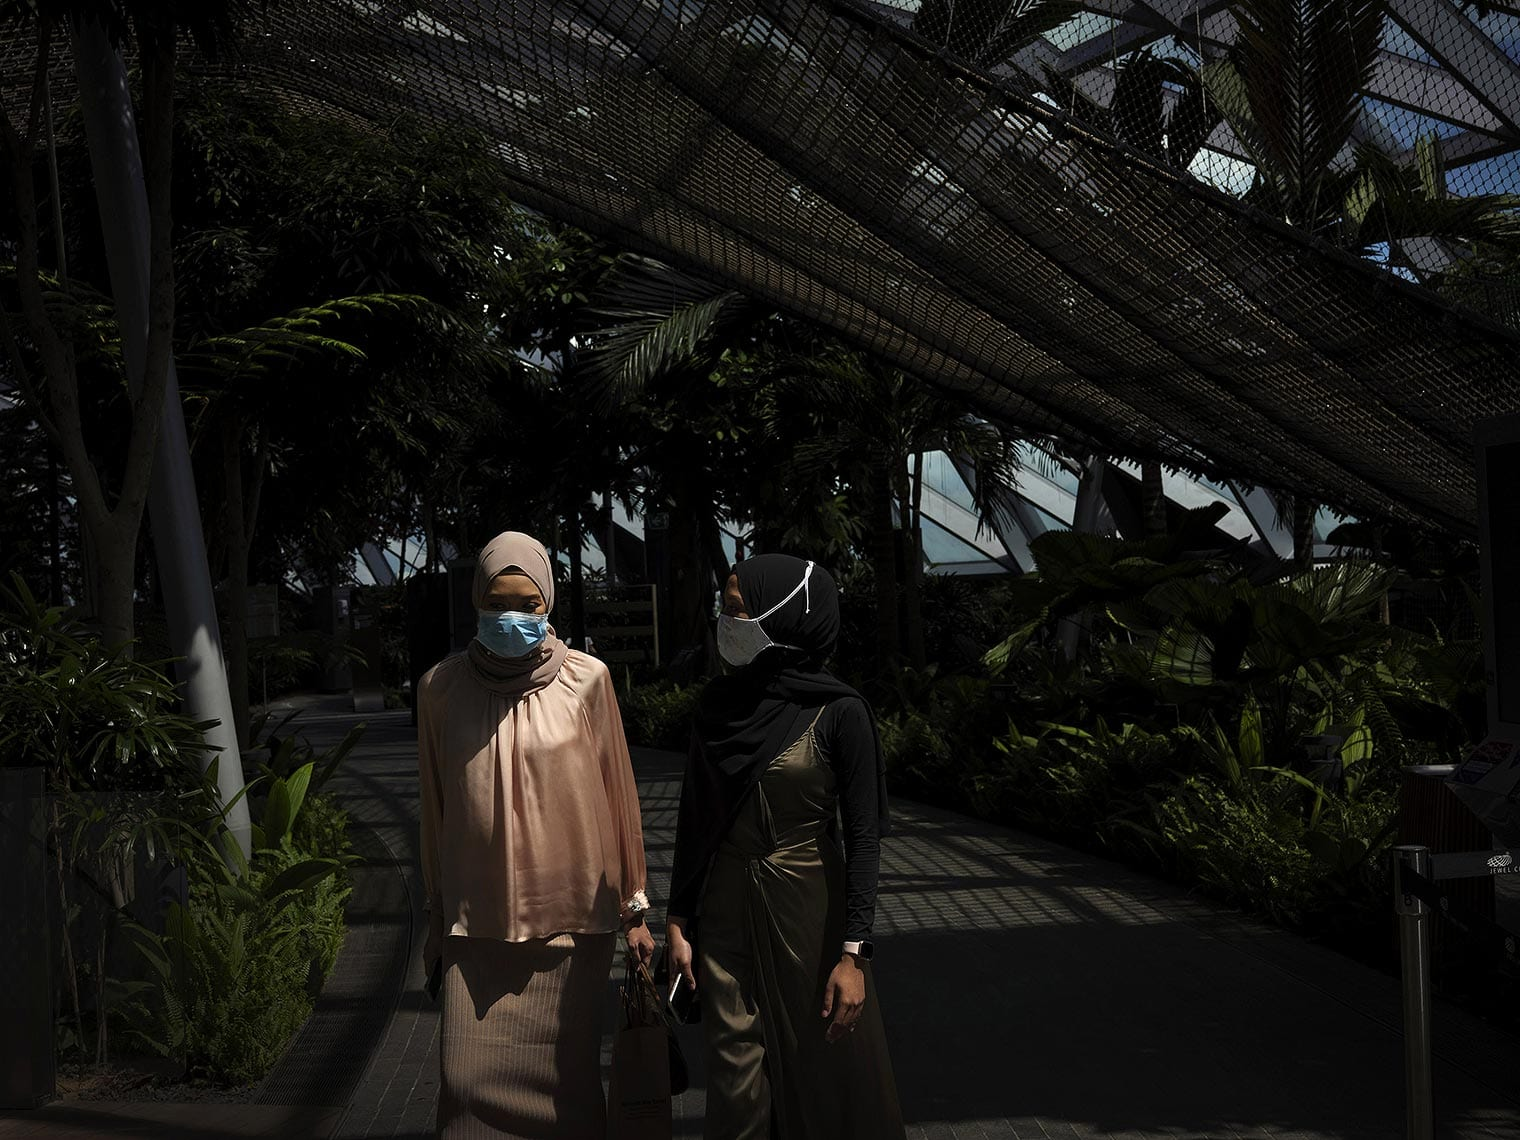 Two masked women walk under a mesh roof, surrounded by greenery